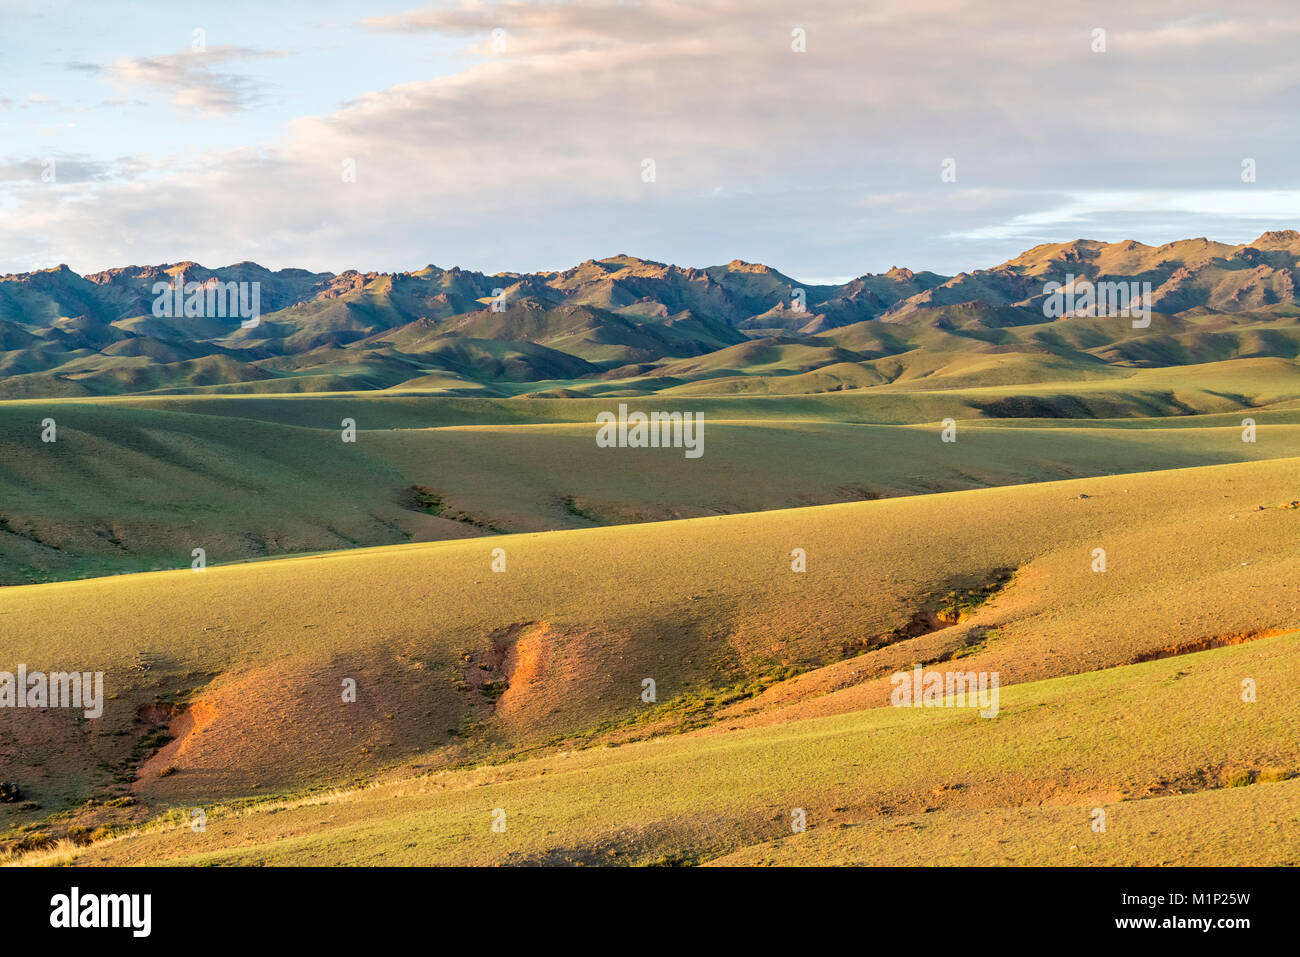 Les collines et montagnes, Bayandalai district, province sud de Gobi, la Mongolie, l'Asie centrale, d'Asie Photo Stock